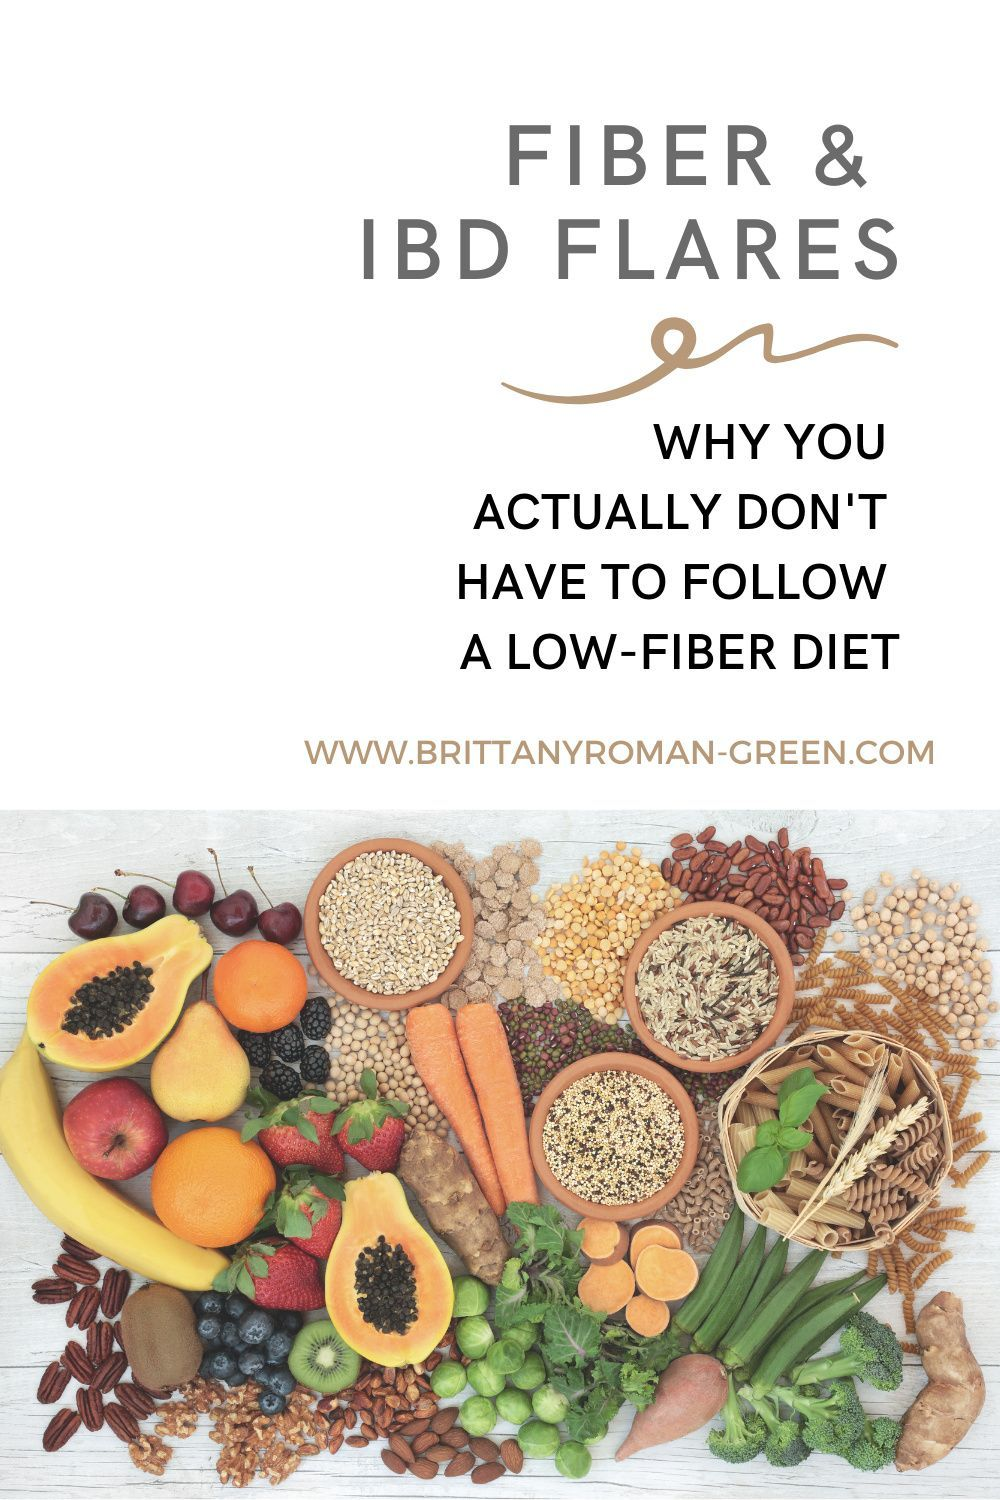 Fiber Ibd Flares Why You Actually Don T Have To Follow A Low Fiber Diet Ulcerative Colitis Diet Crohns Disease Diet Low Fiber Diet